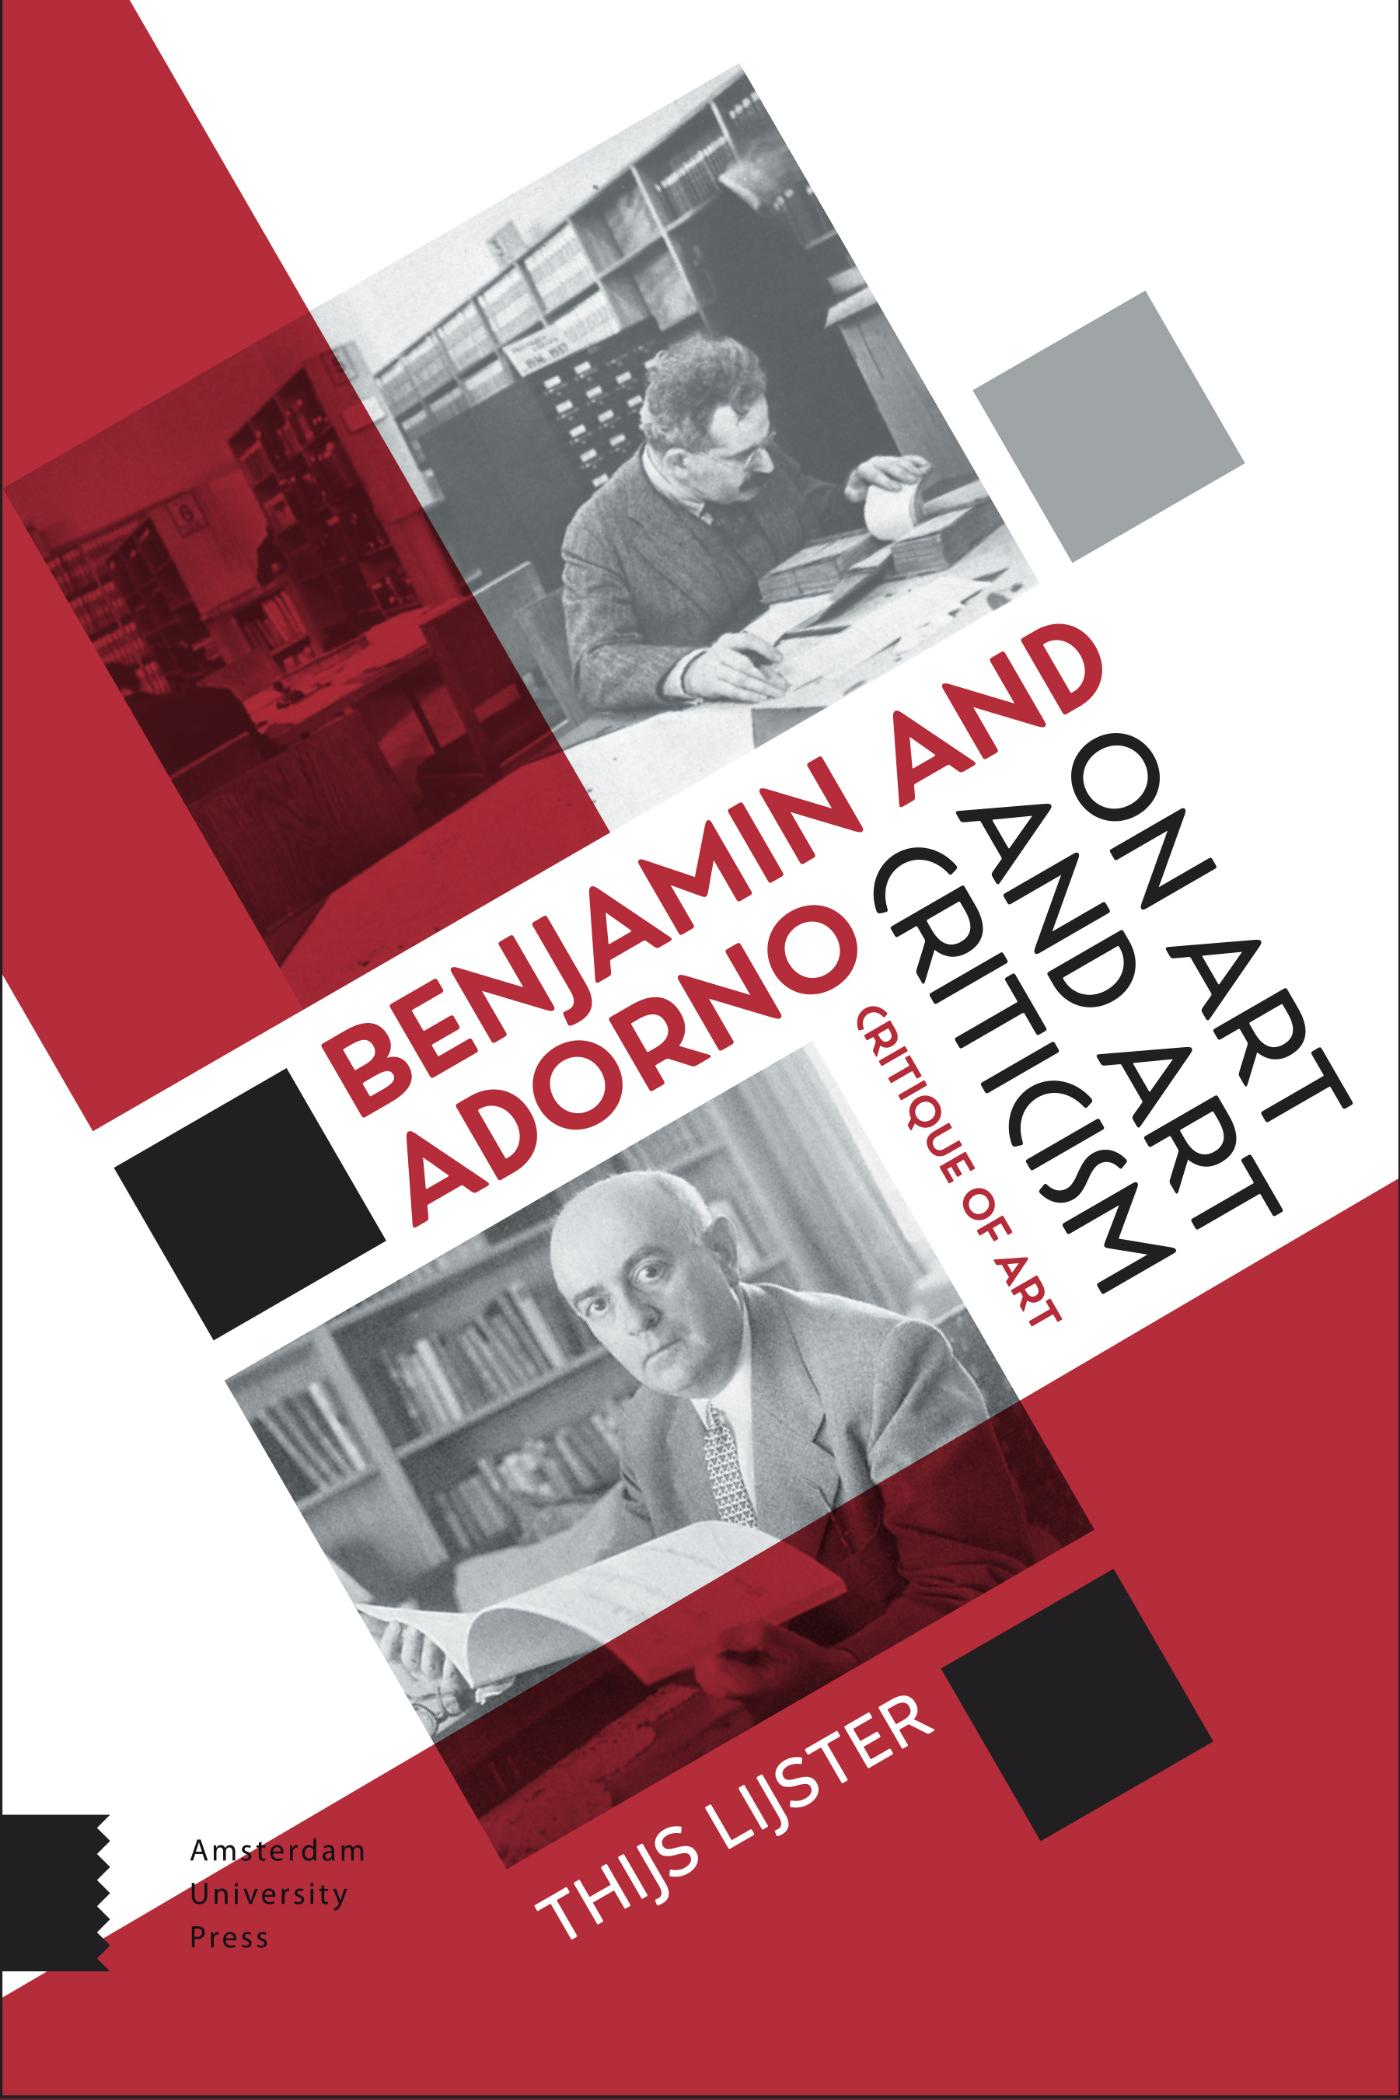 Benjamin and Adorno on art and art criticism